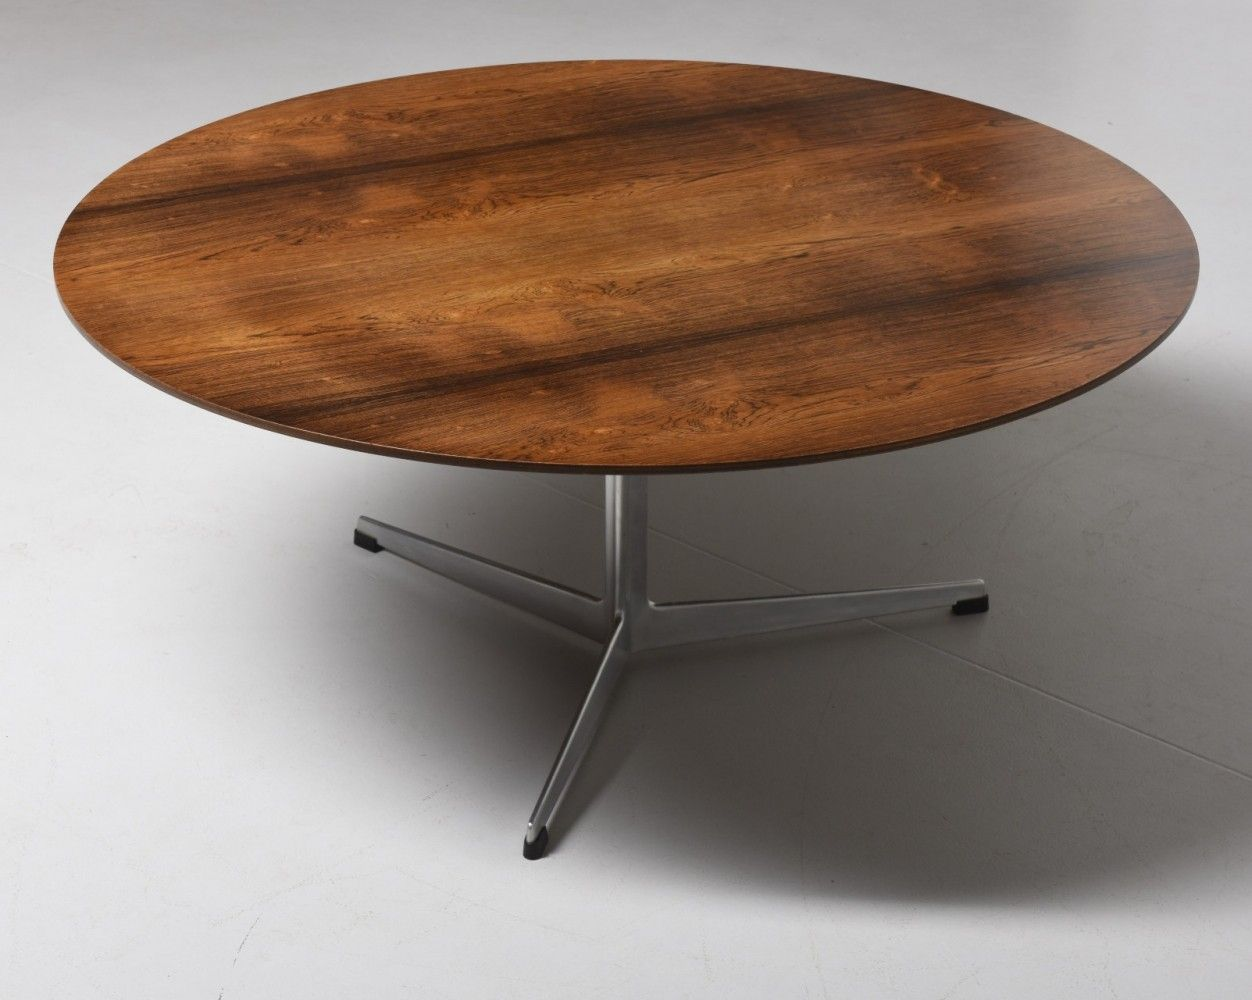 Pin On Design Tables Coffee Tables Desks [ 1000 x 1252 Pixel ]